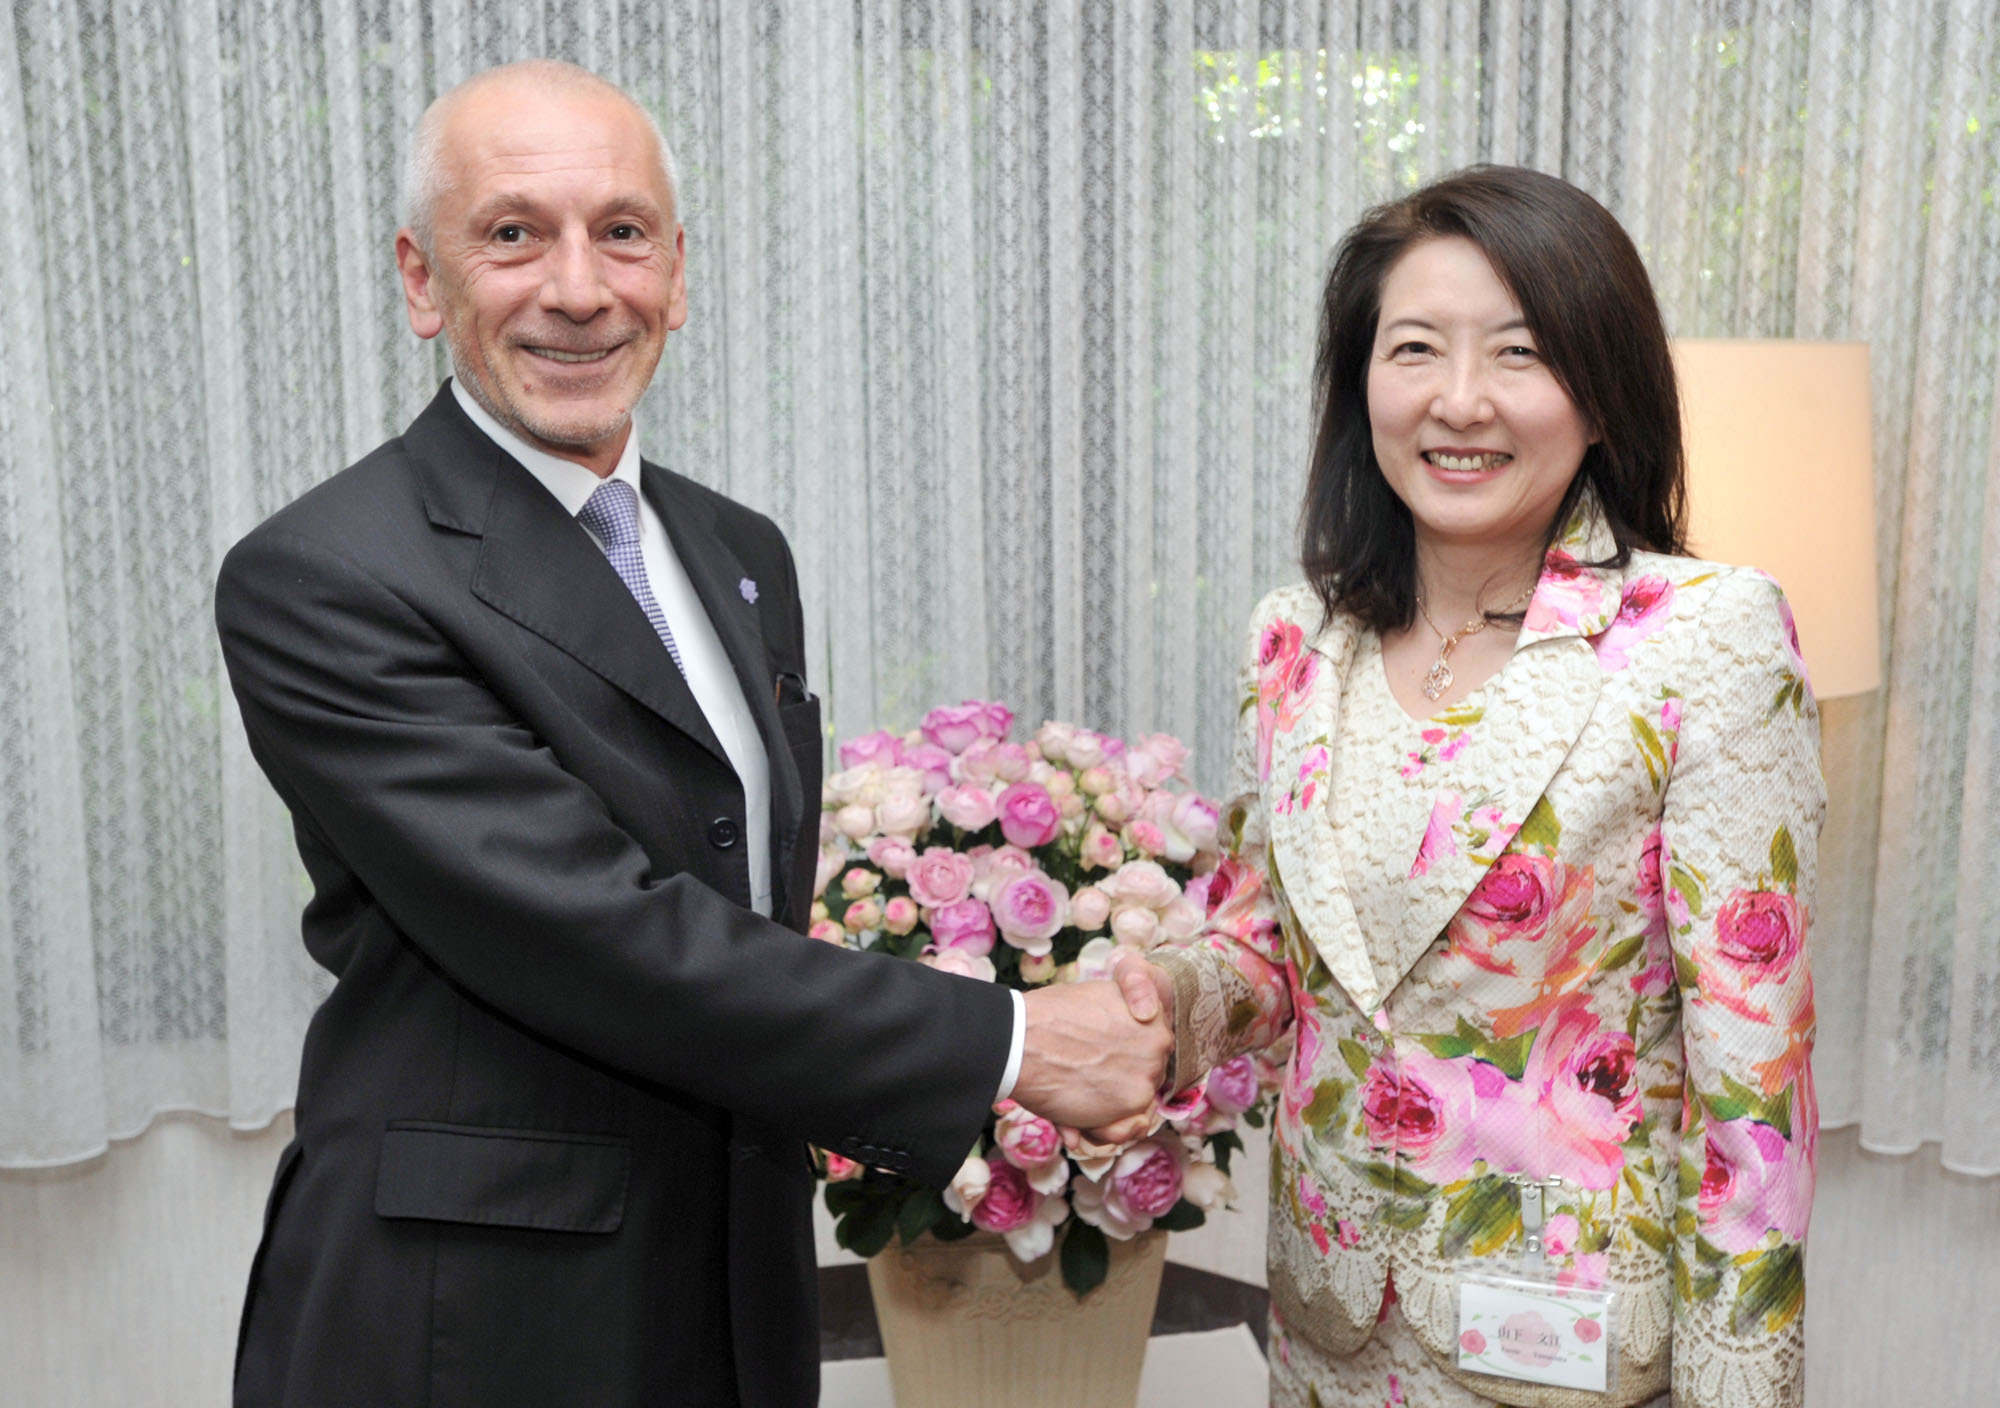 Bulgarian Rose Cultural Association Director Fumie Yamashita (right) shakes hands with Bulgarian Ambassador Georgi Vassilev at the second Rose Day Charity Party at the ambassadors residence in Tokyo on June 2. | YOSHIAKI MIURA